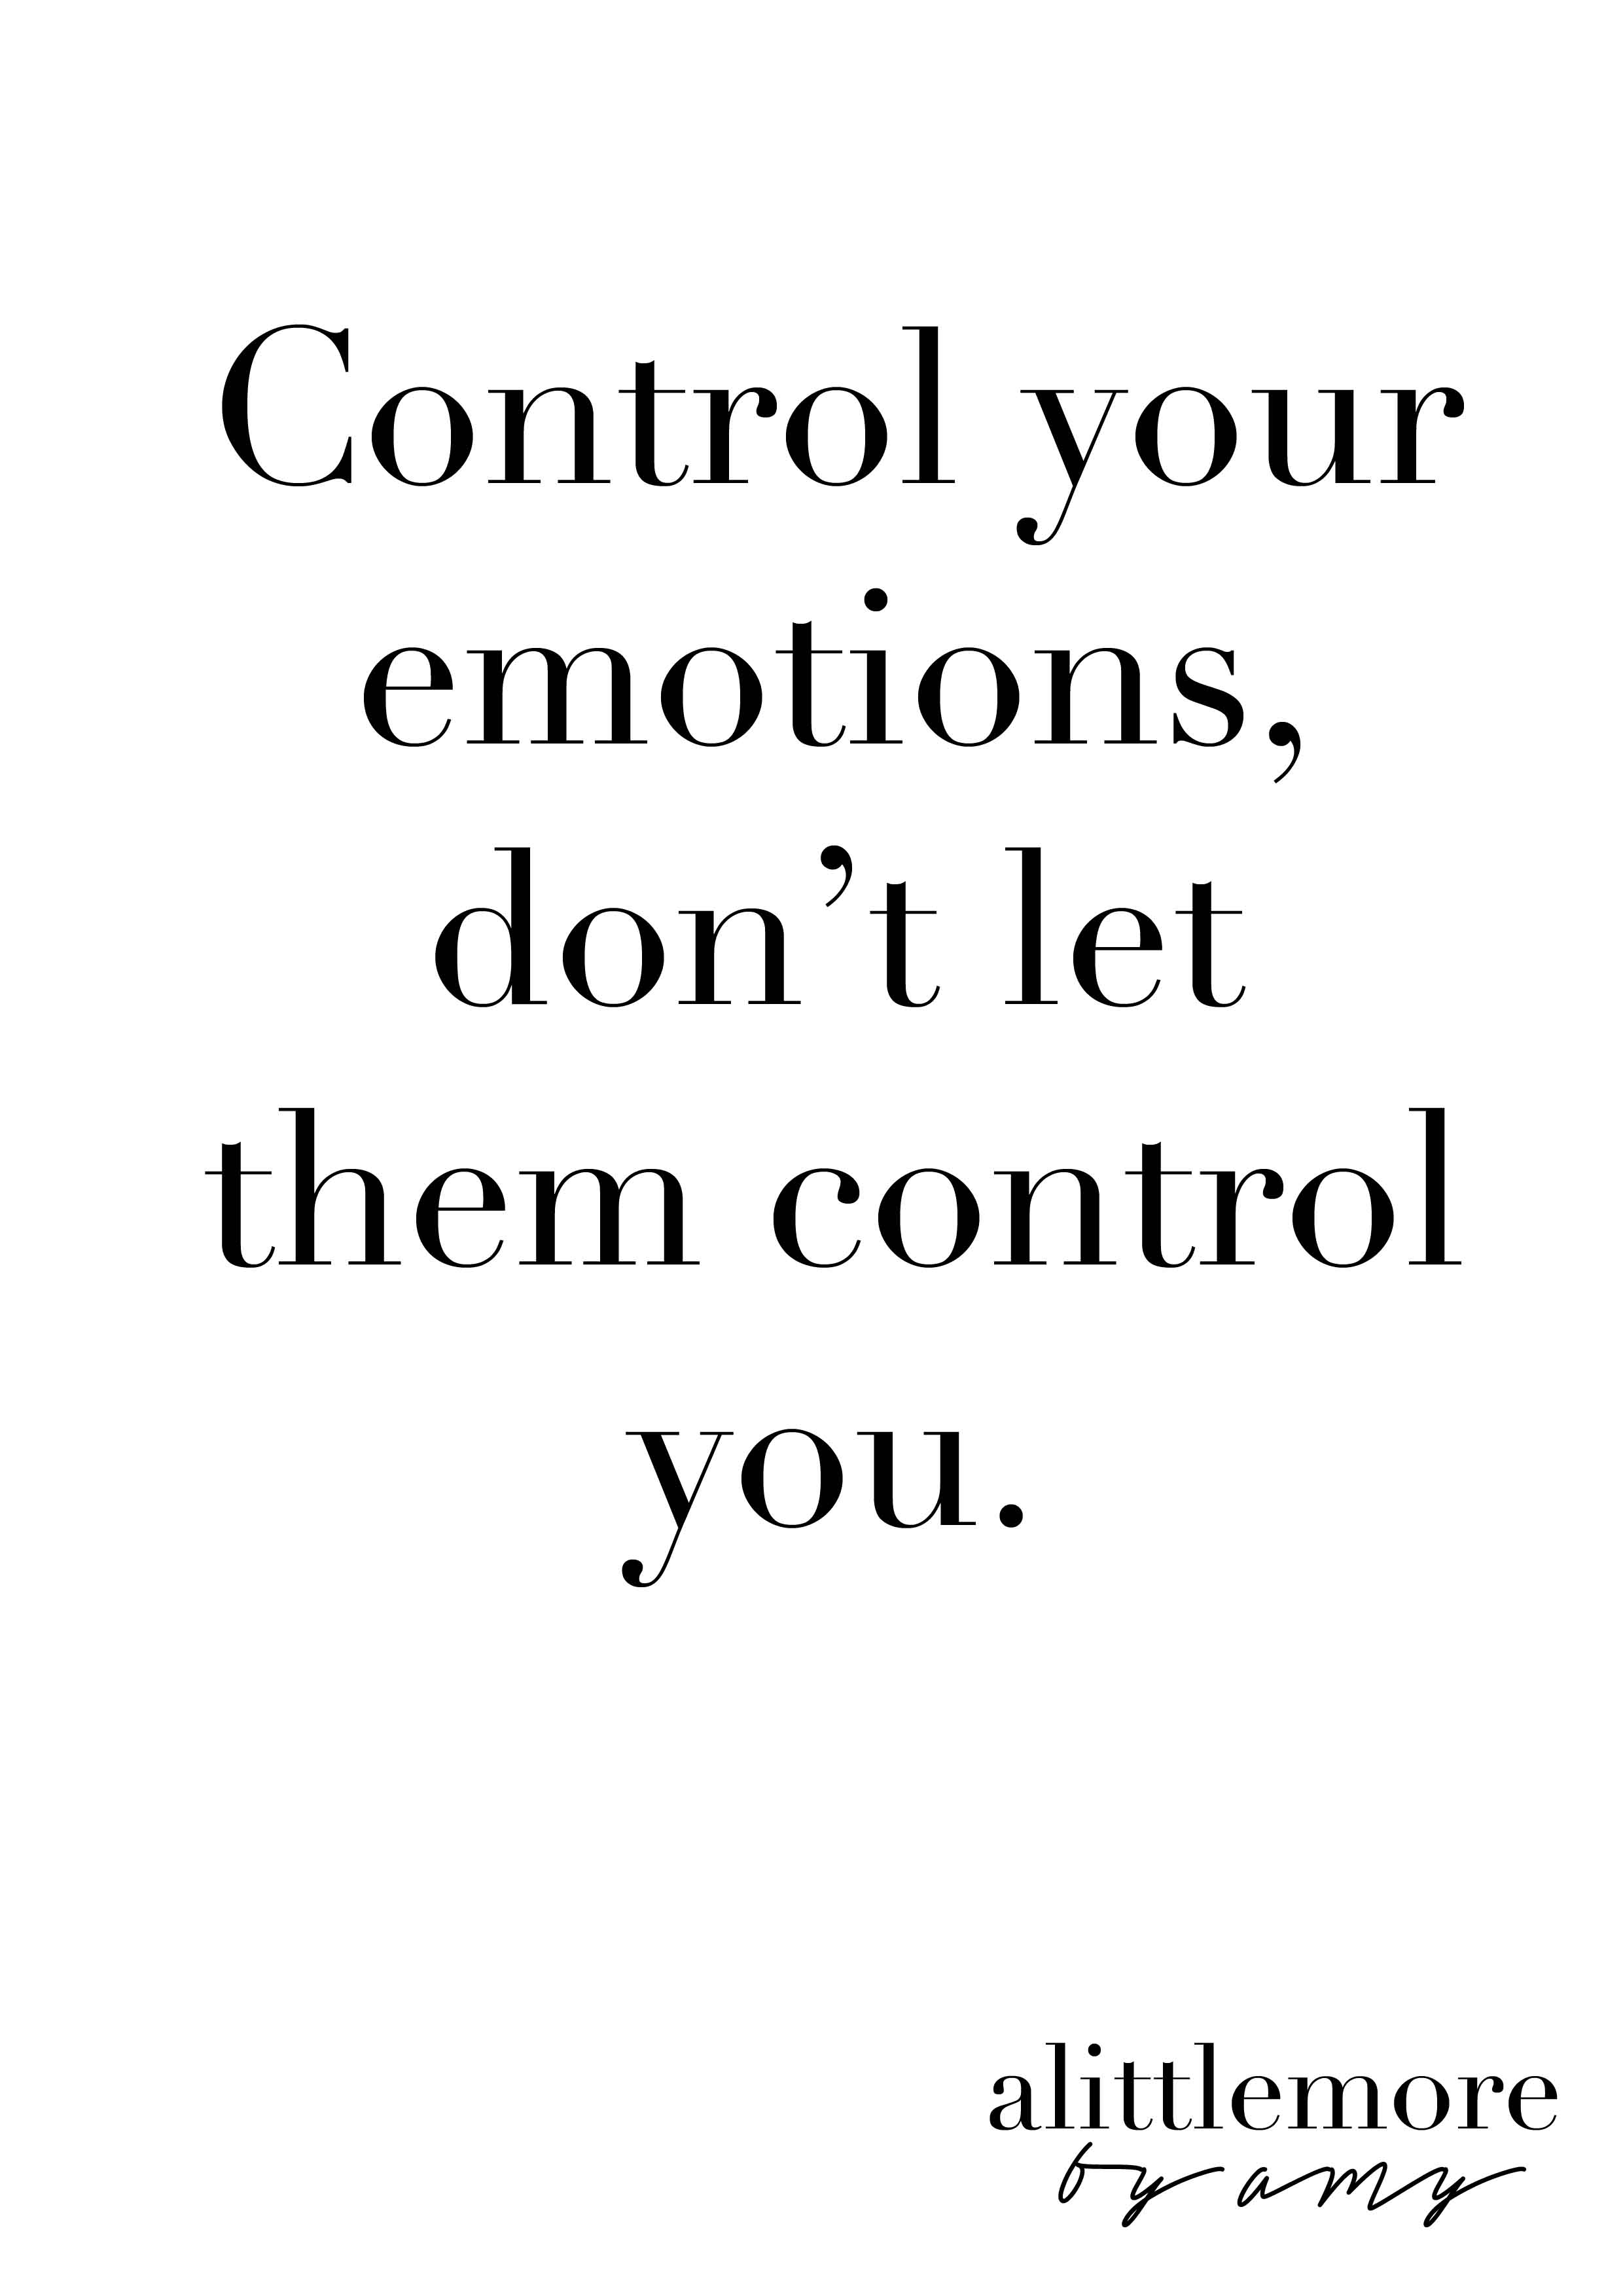 How to control emotions